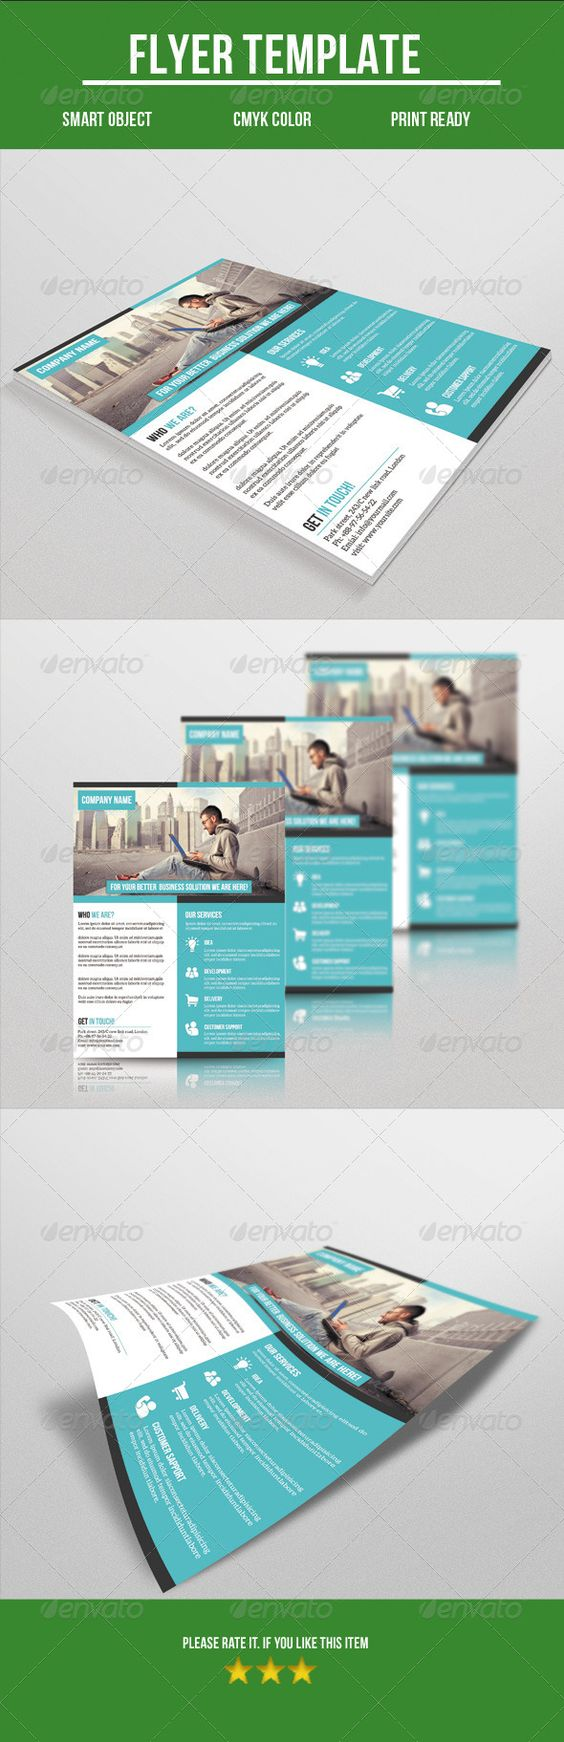 corporate flyer flyers templates and psd templates corporate flyer psd template buy and graphicriver net